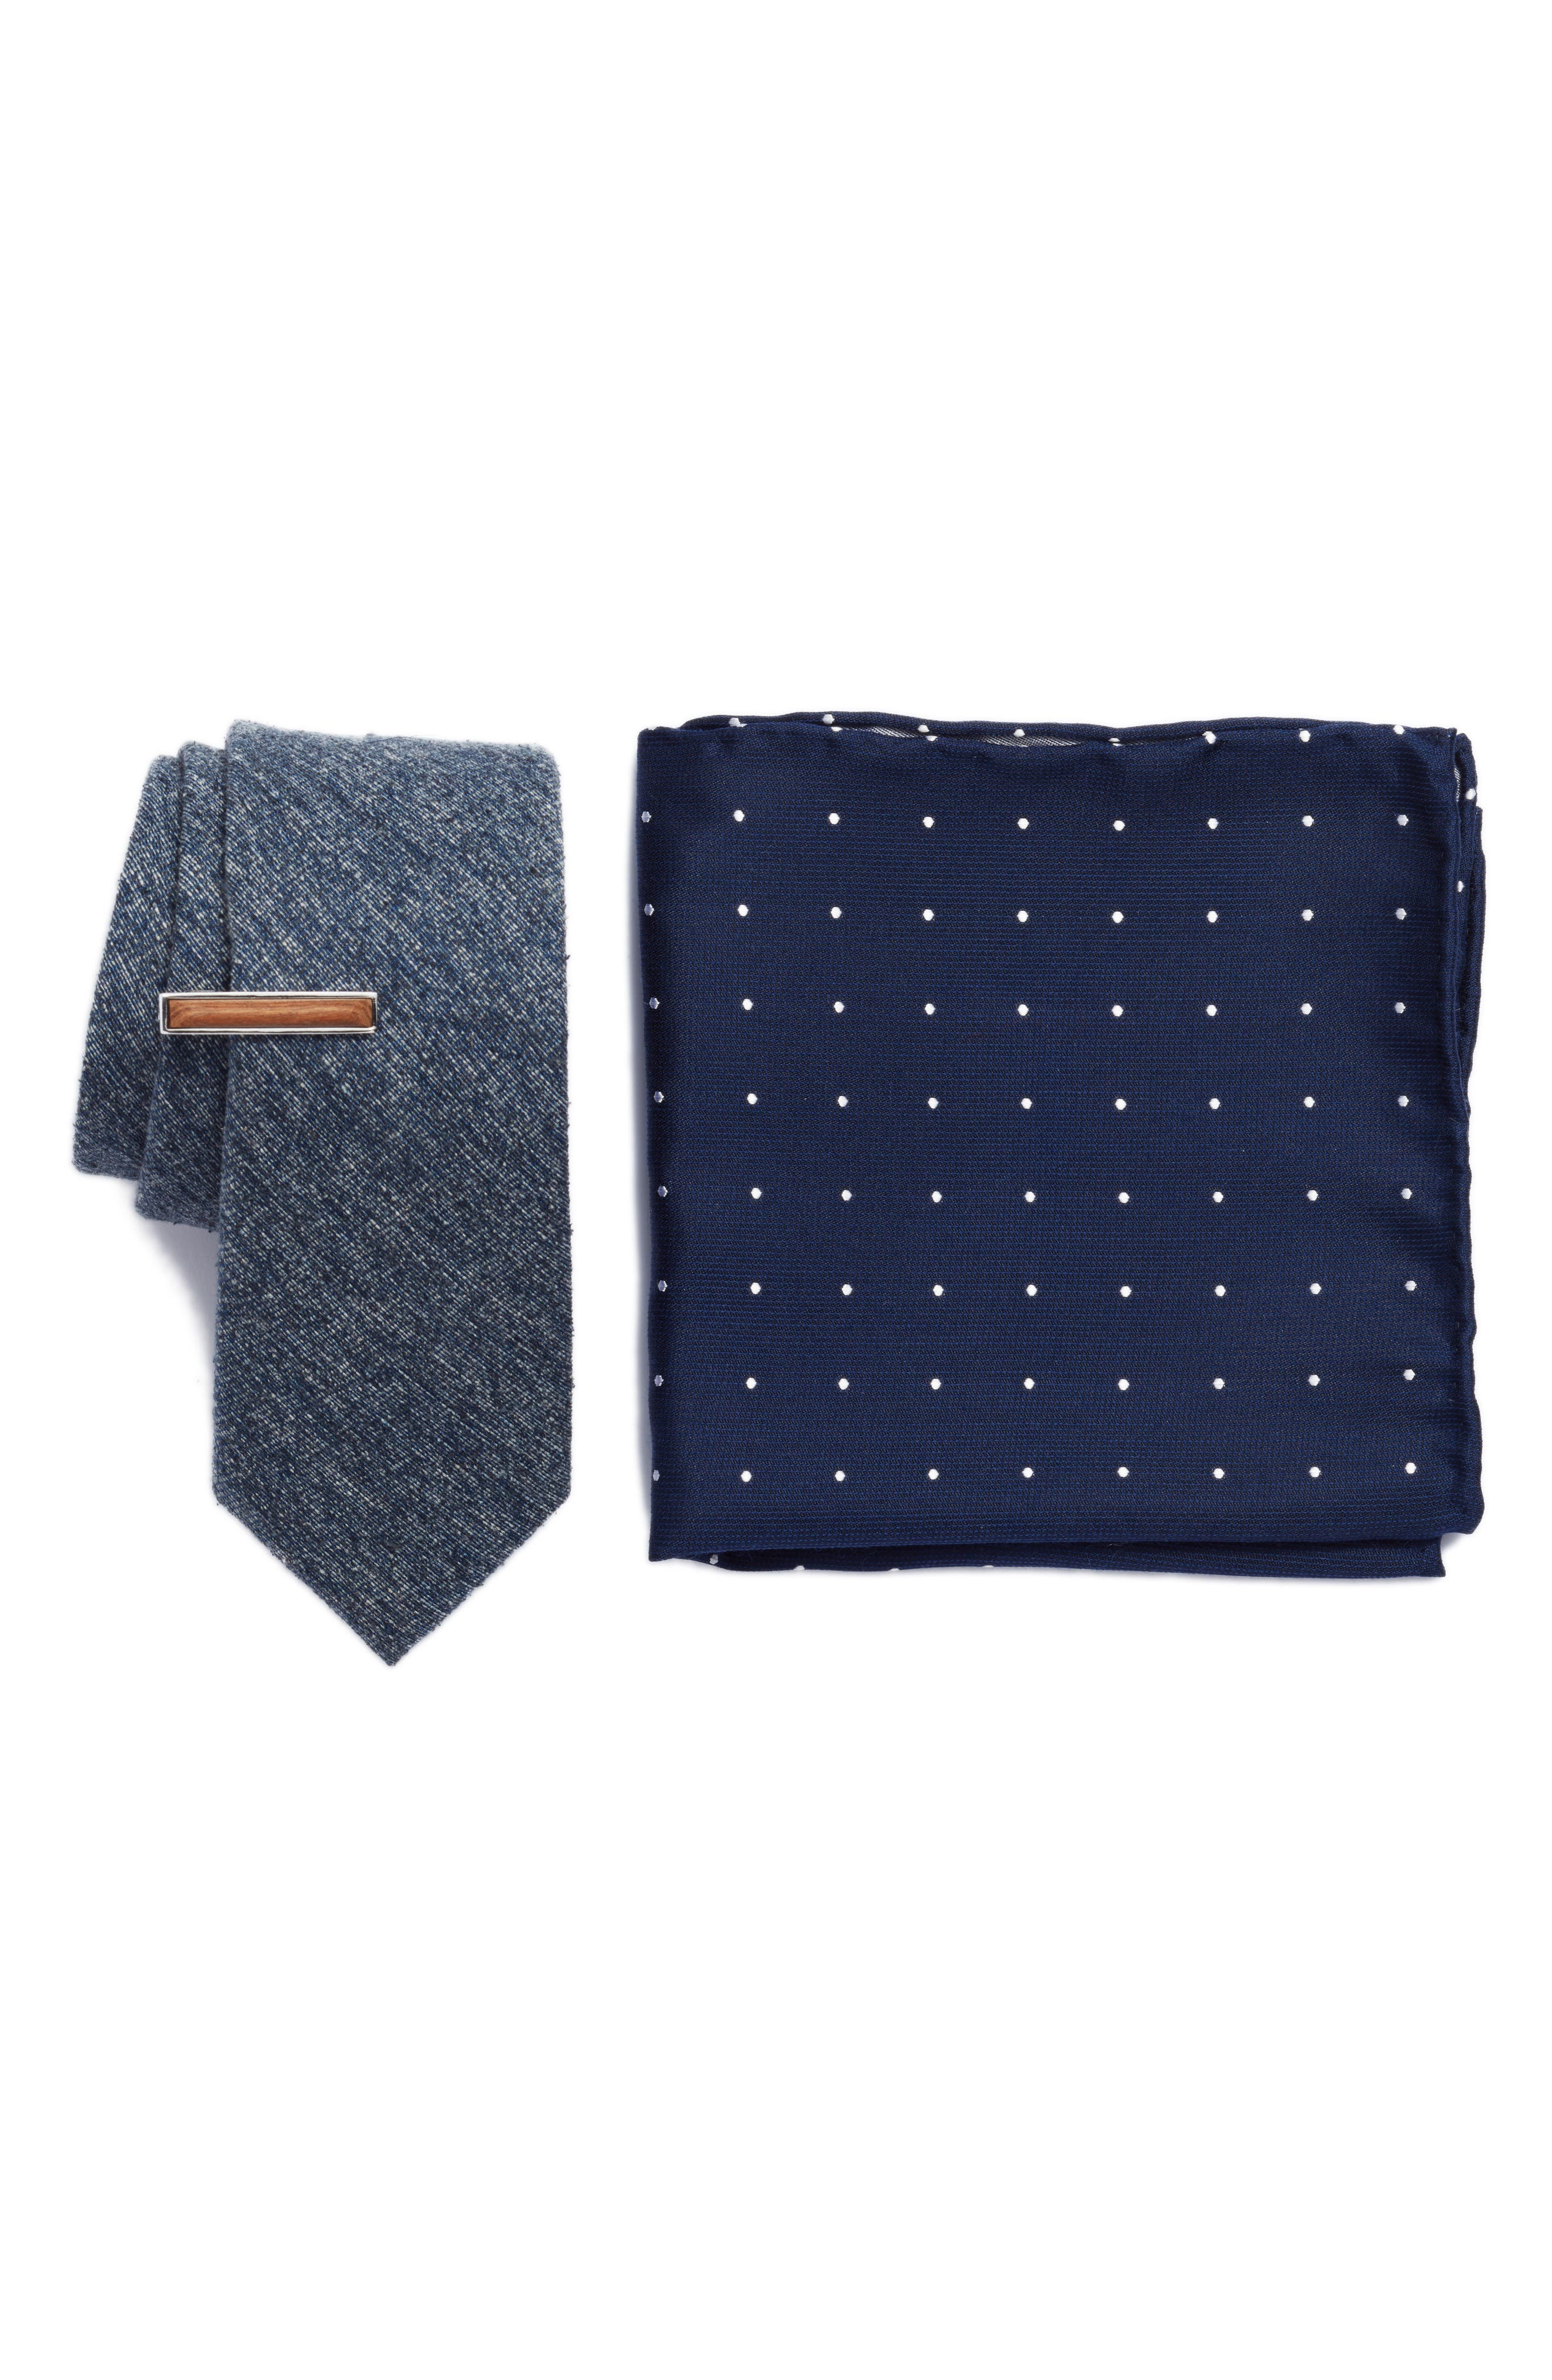 West Ridge Solid 3-Piece Skinny Tie Style Box,                             Main thumbnail 1, color,                             Navy